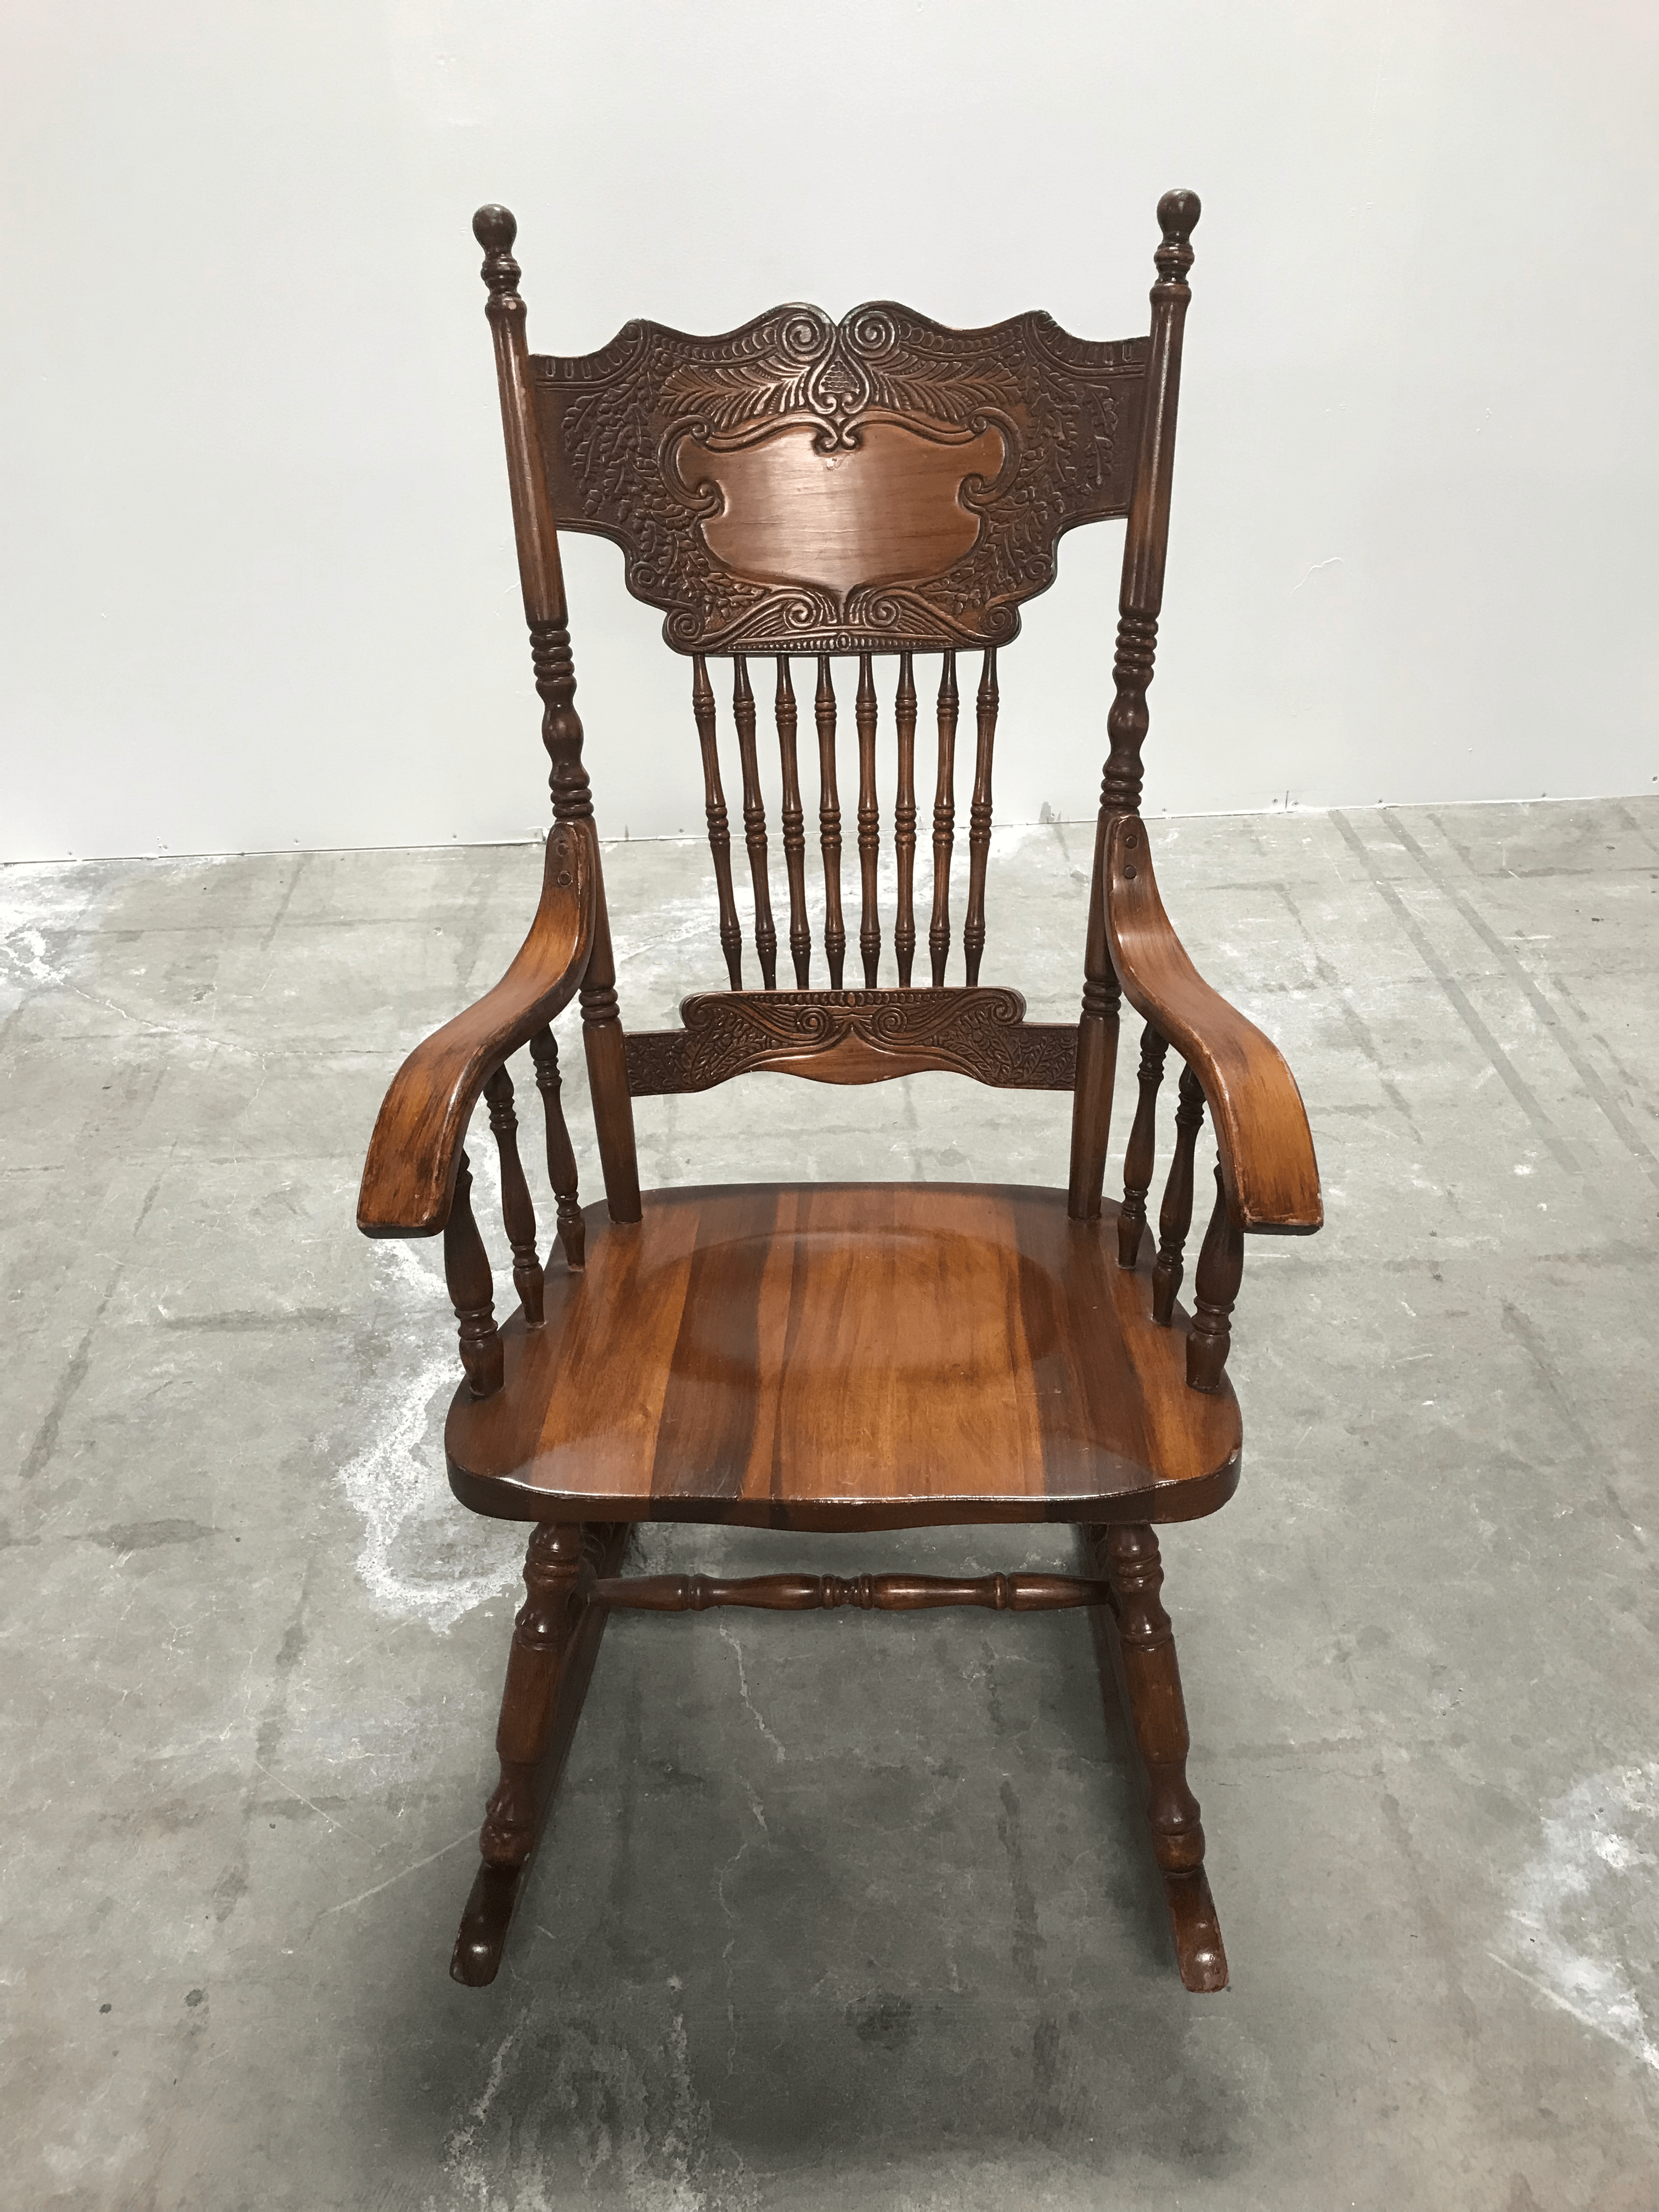 rocking chair fine woodworking king houston vintage mid century cottage wooden detail chairish exquisite detailing on a classic woodwork brings this piece together with all